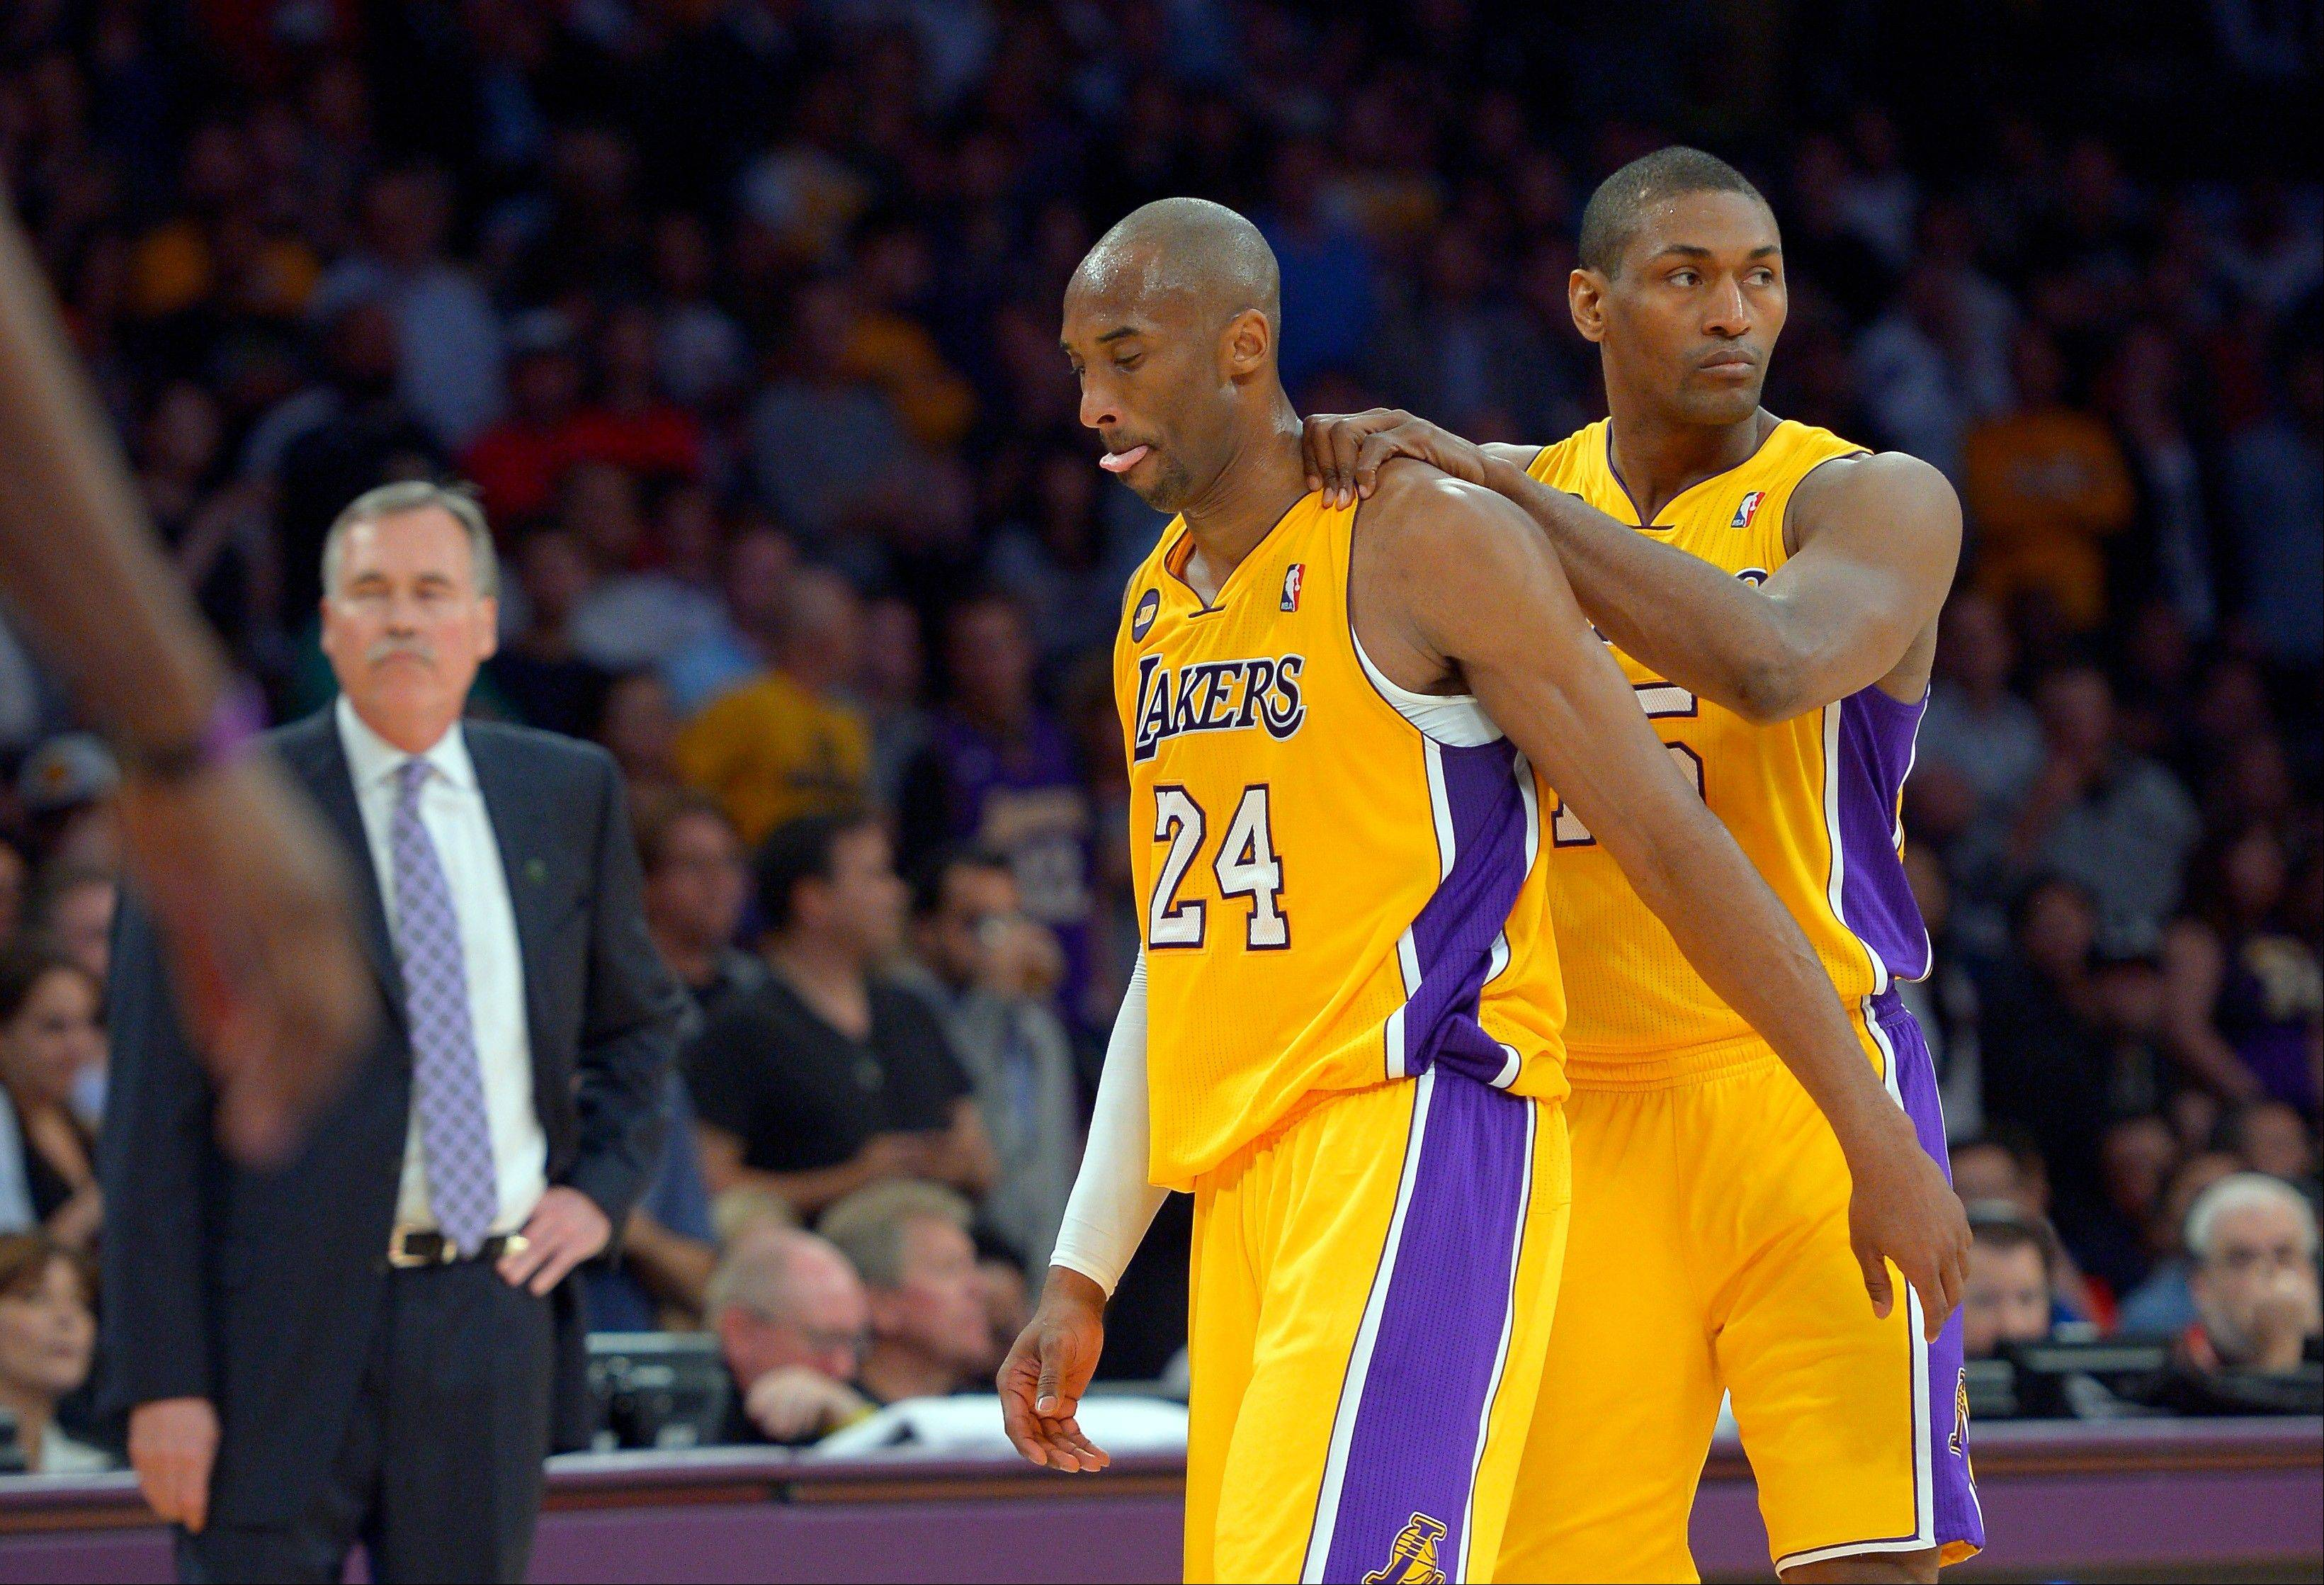 Los Angeles Lakers guard Kobe Bryant, center, is consoled by forward Metta World Peace, right, as head coach Mike D'Antoni looks on after being injured during the second half of their NBA basketball game against the Golden State Warriors, Friday, April 12, 2013, in Los Angeles. The Lakers won 118-116.